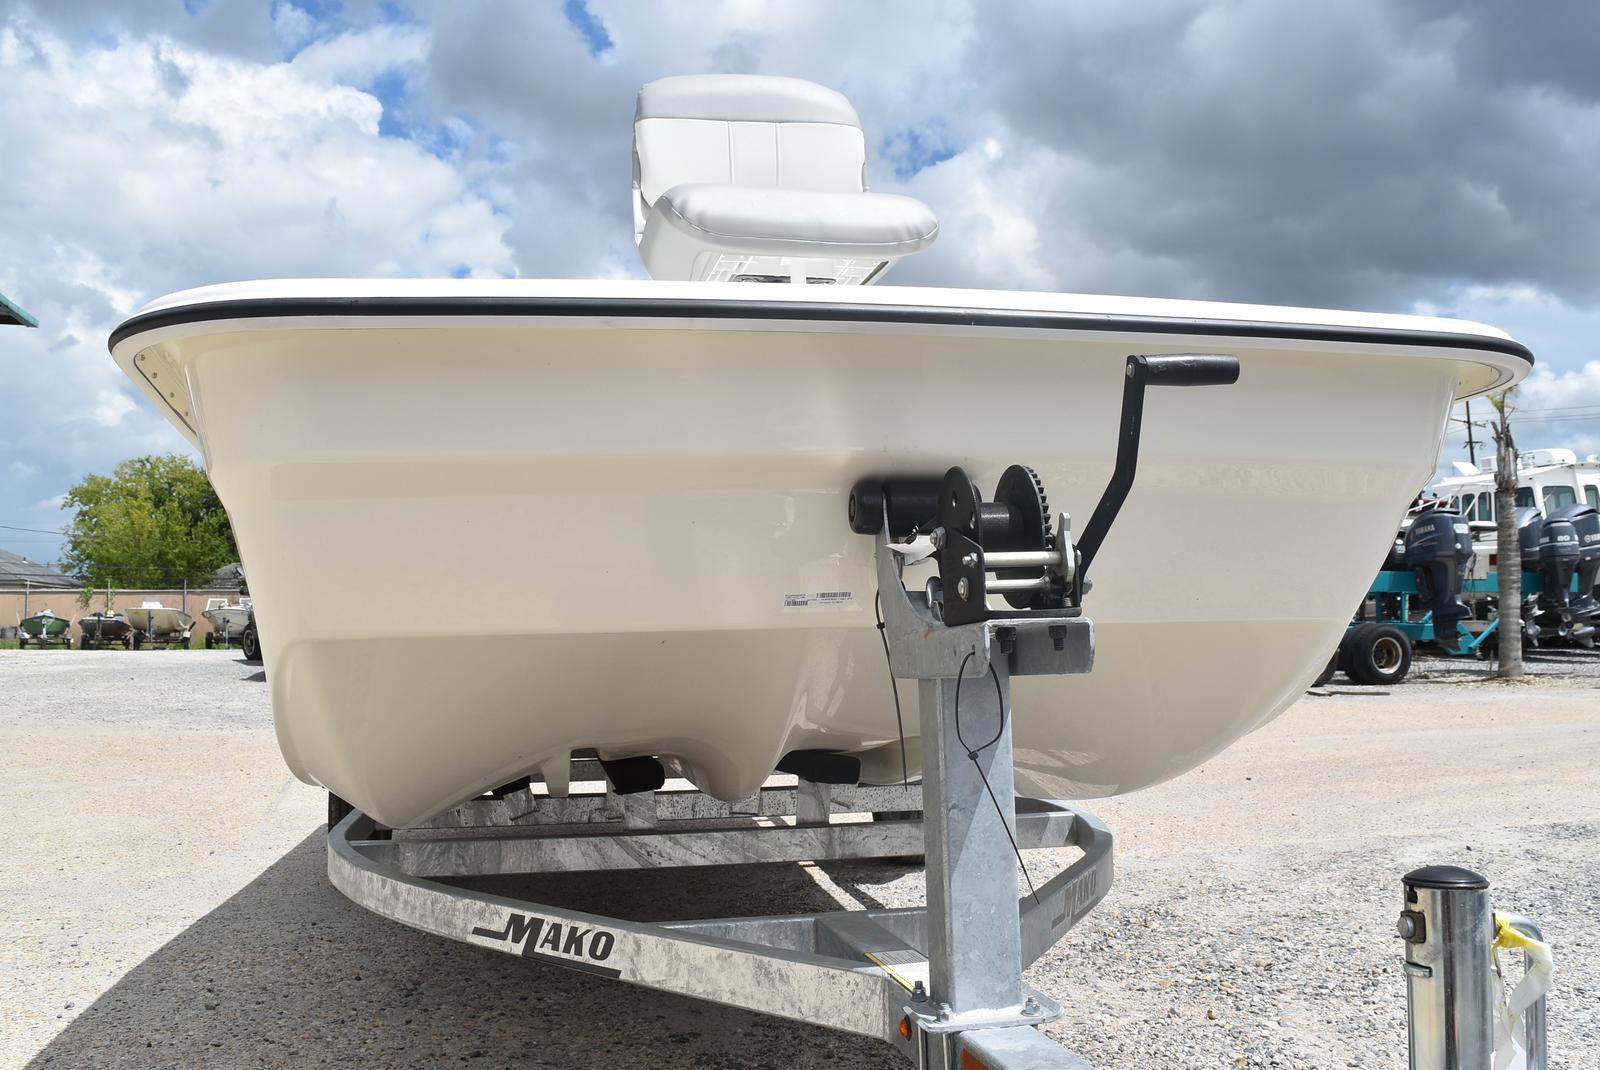 2020 Mako boat for sale, model of the boat is Pro Skiff 17, 75 ELPT & Image # 377 of 702